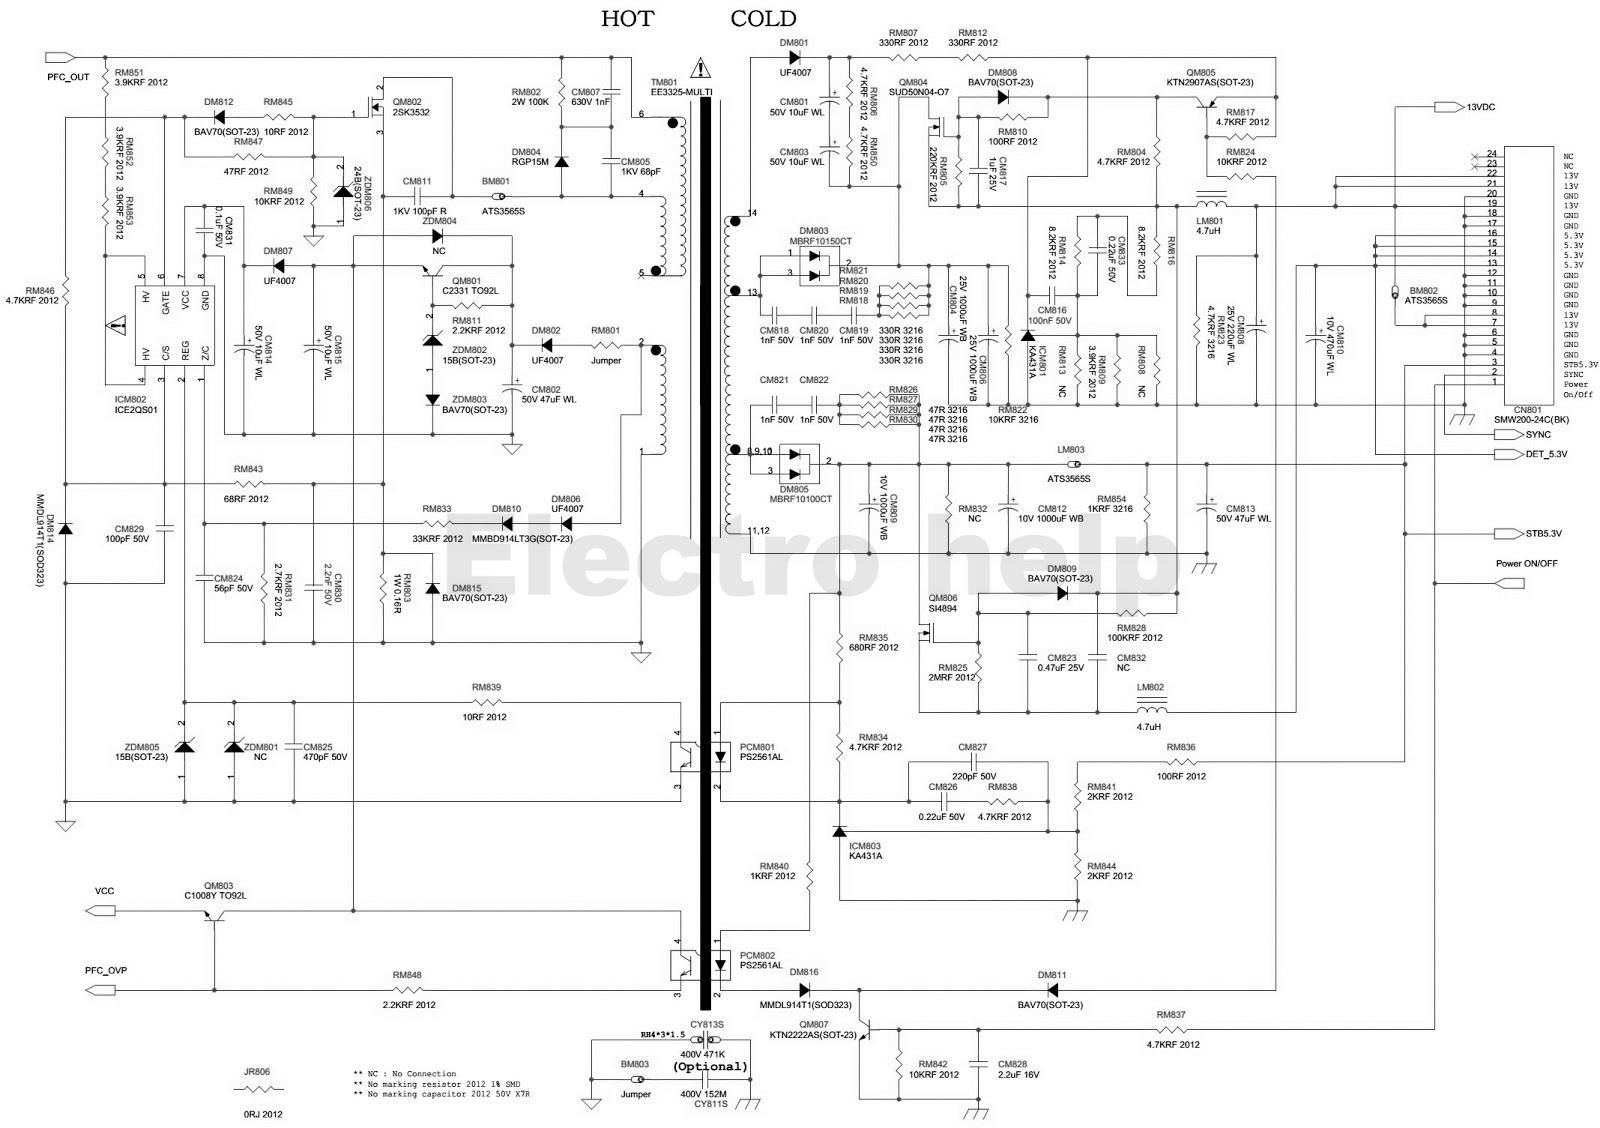 bn44-00197 - samsung lcd tv power supply circuit diagram